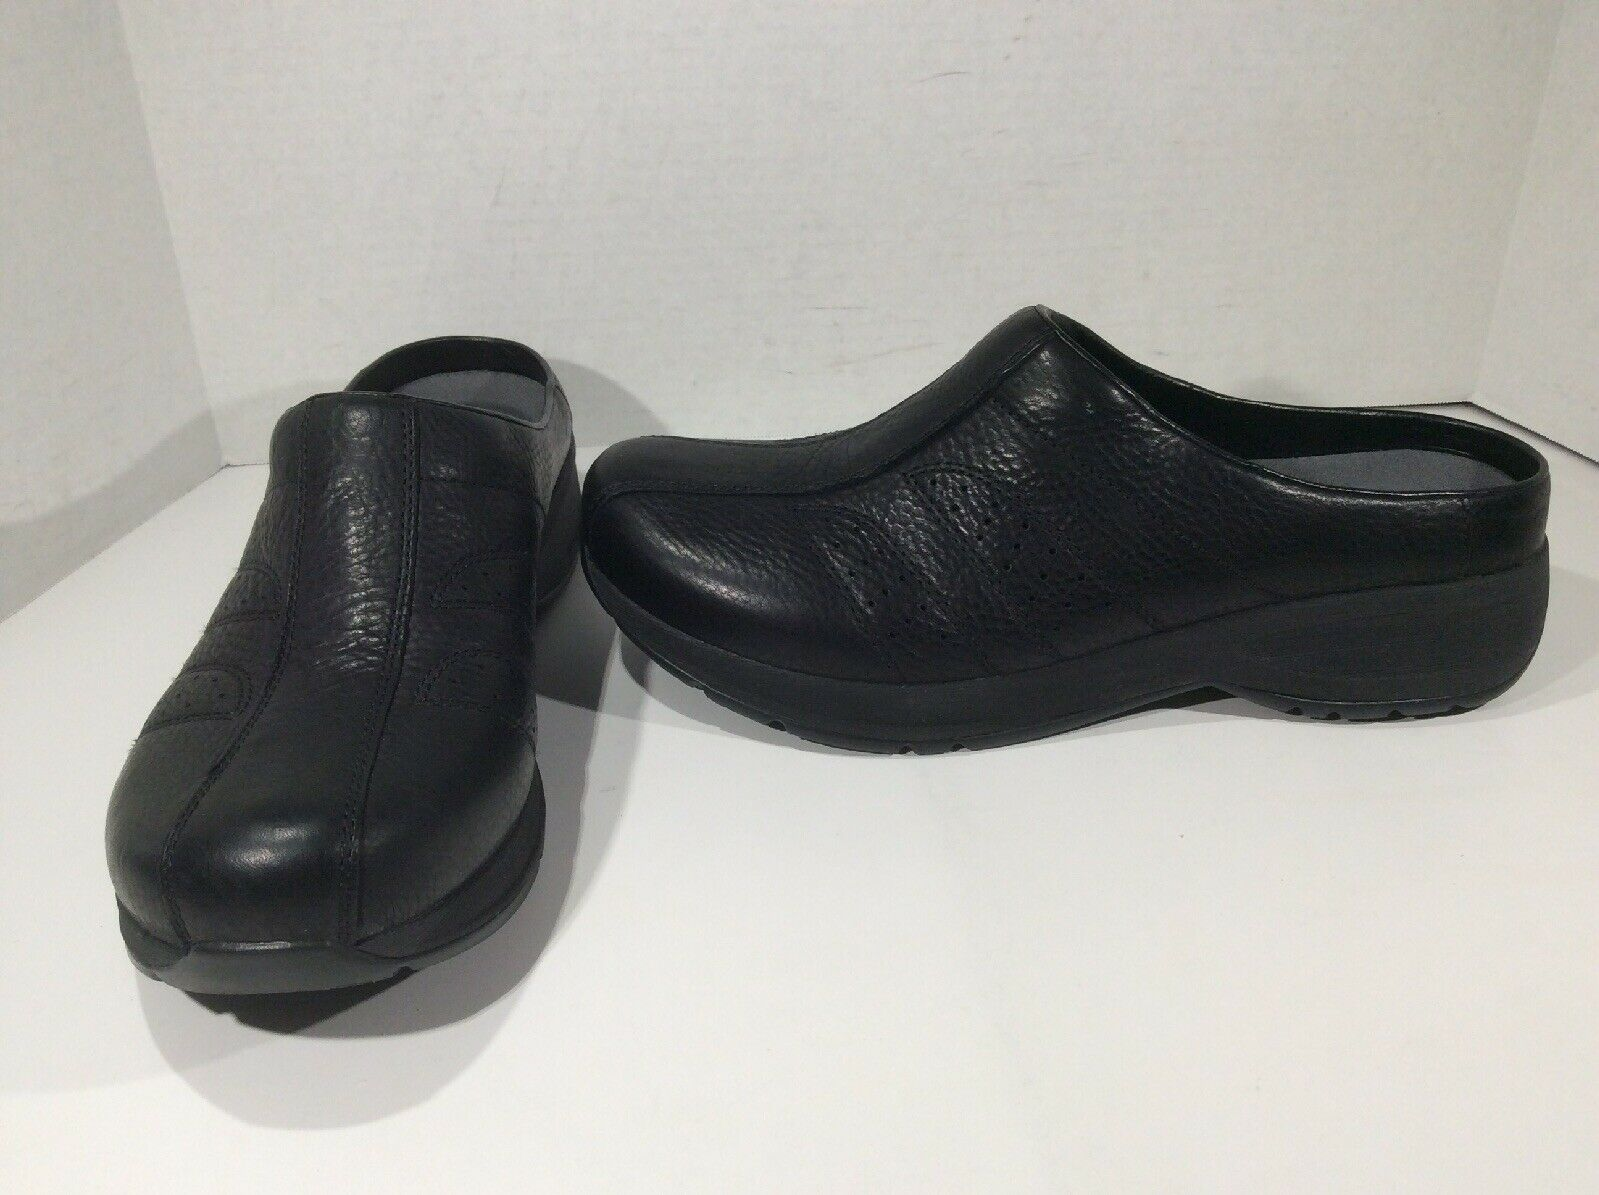 DANSKO Women Shelly Black Casual Walking Athletic shoes Sz 41 = 10.5 - 11 DK-146